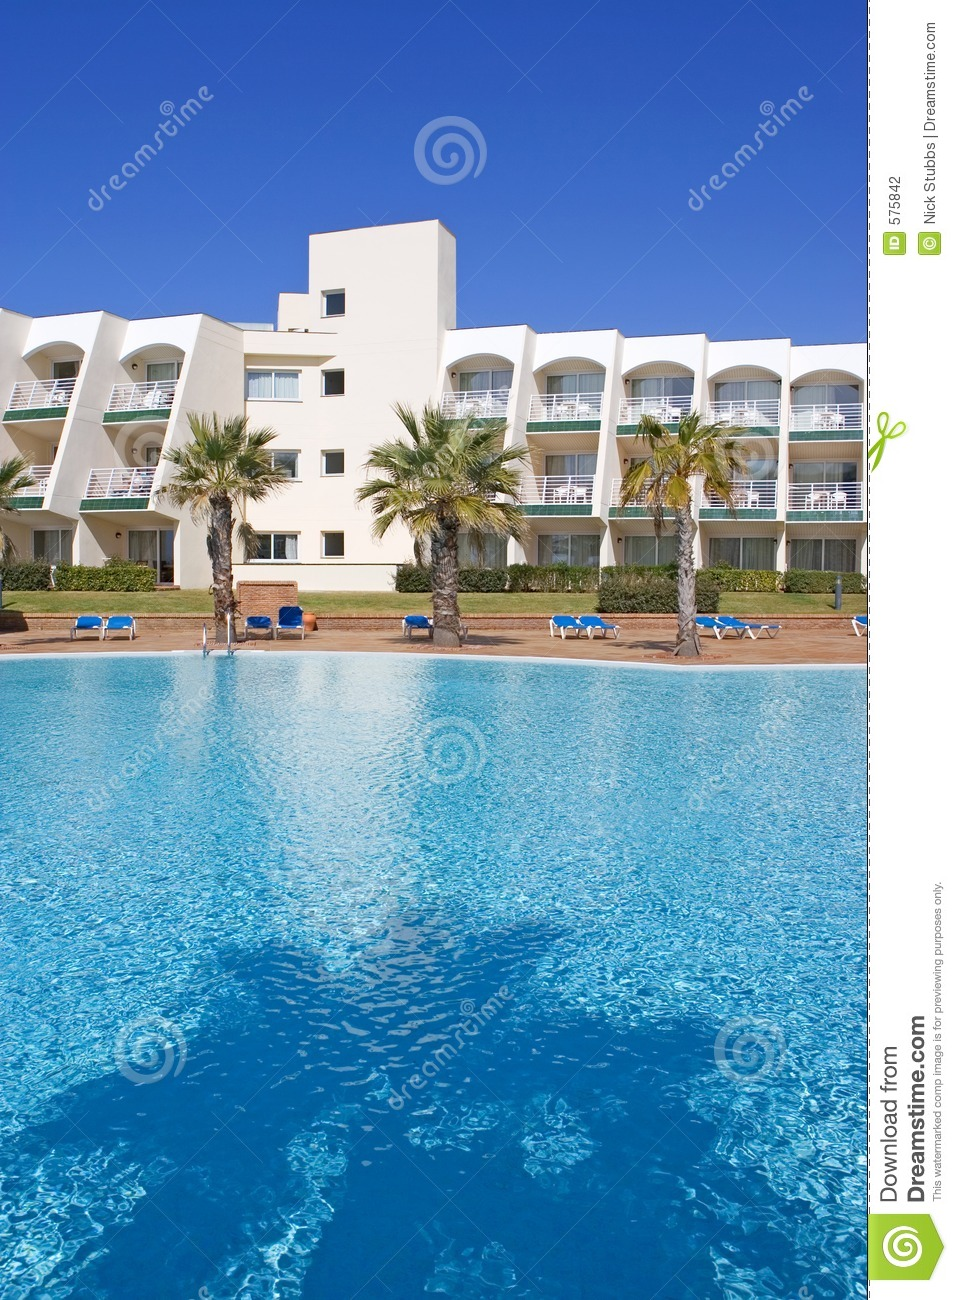 Beautiful views of the swimming pool royalty free stock image 53741446 for How to say swimming pool in spanish